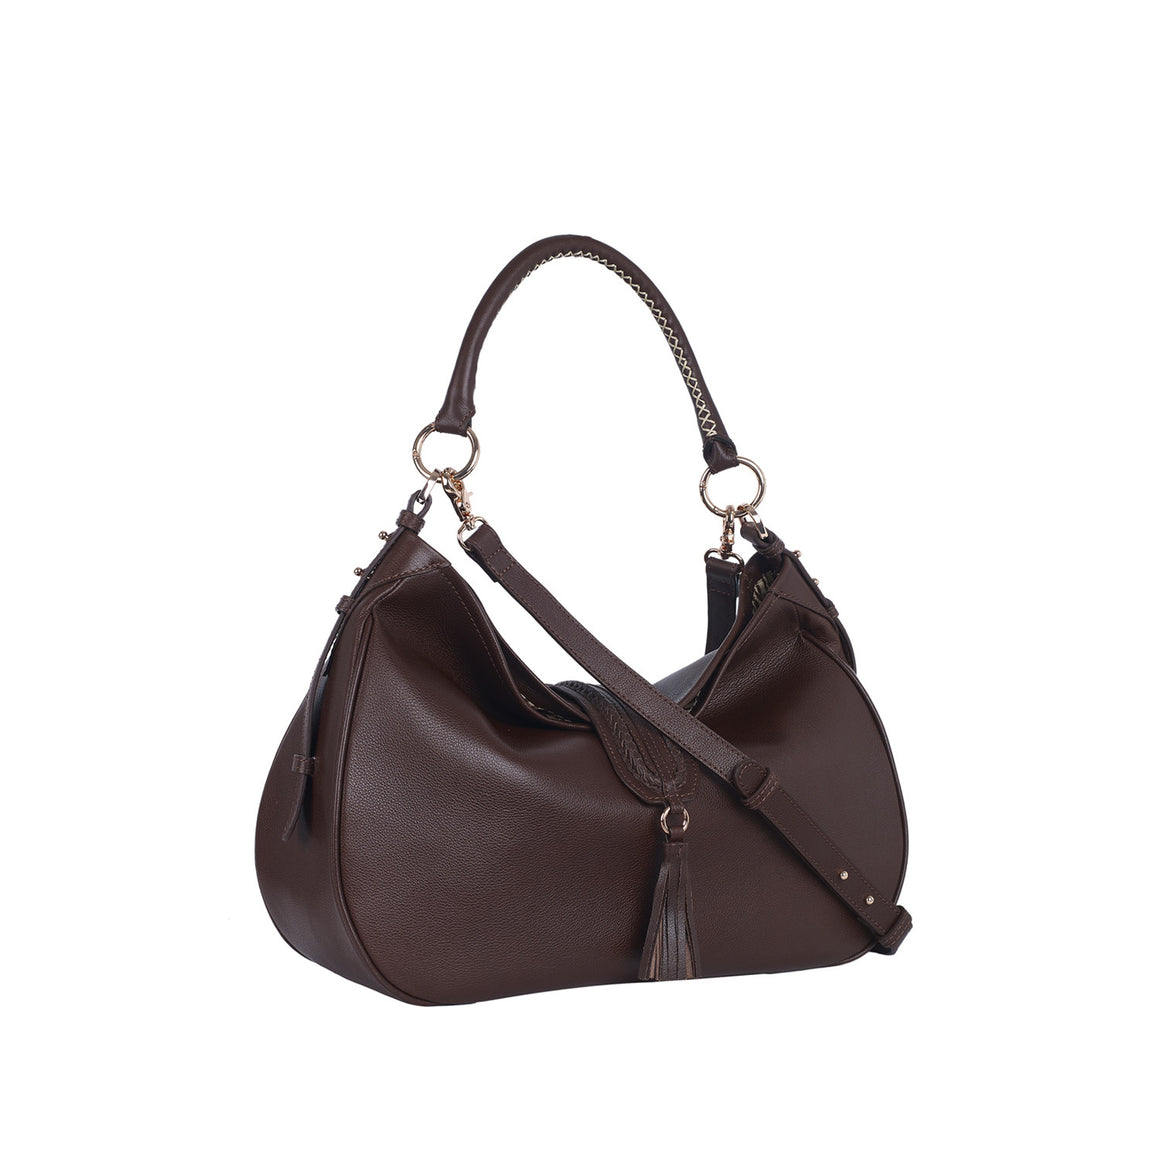 SB 0003 - TOHL EDIE WOMEN'S SHOULDER BAG -  CHOCO